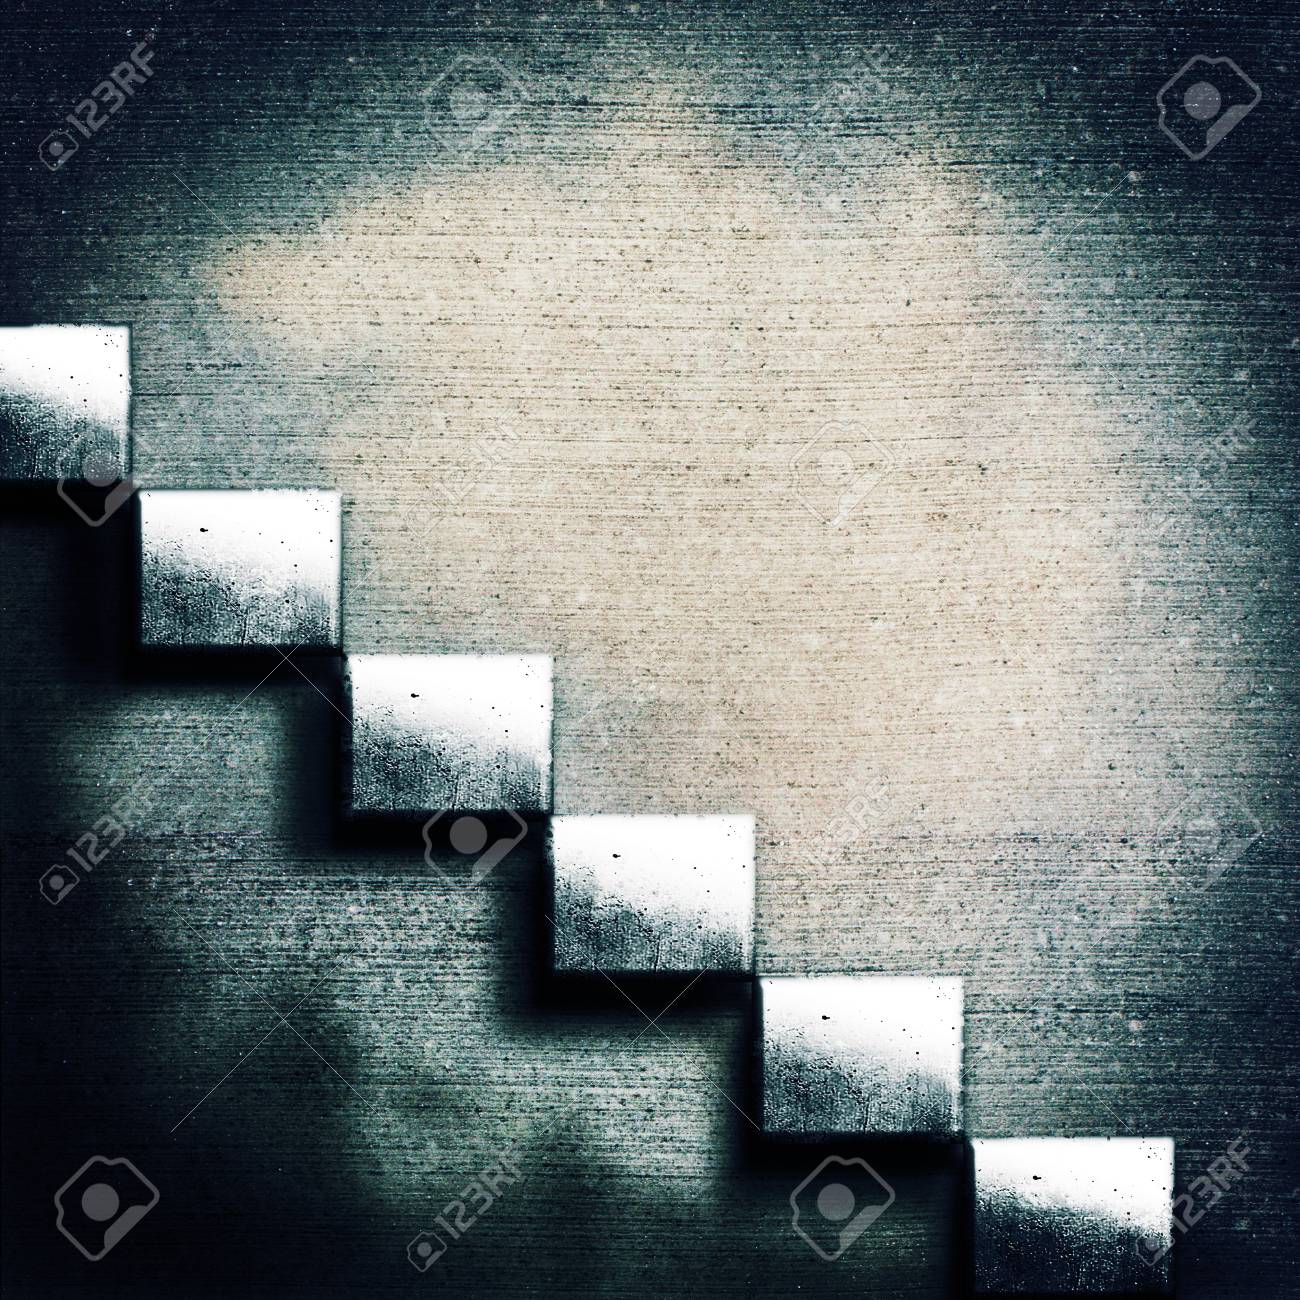 Abstract concrete stairs. Grunge architecture backgrounds Stock Photo - 14267563